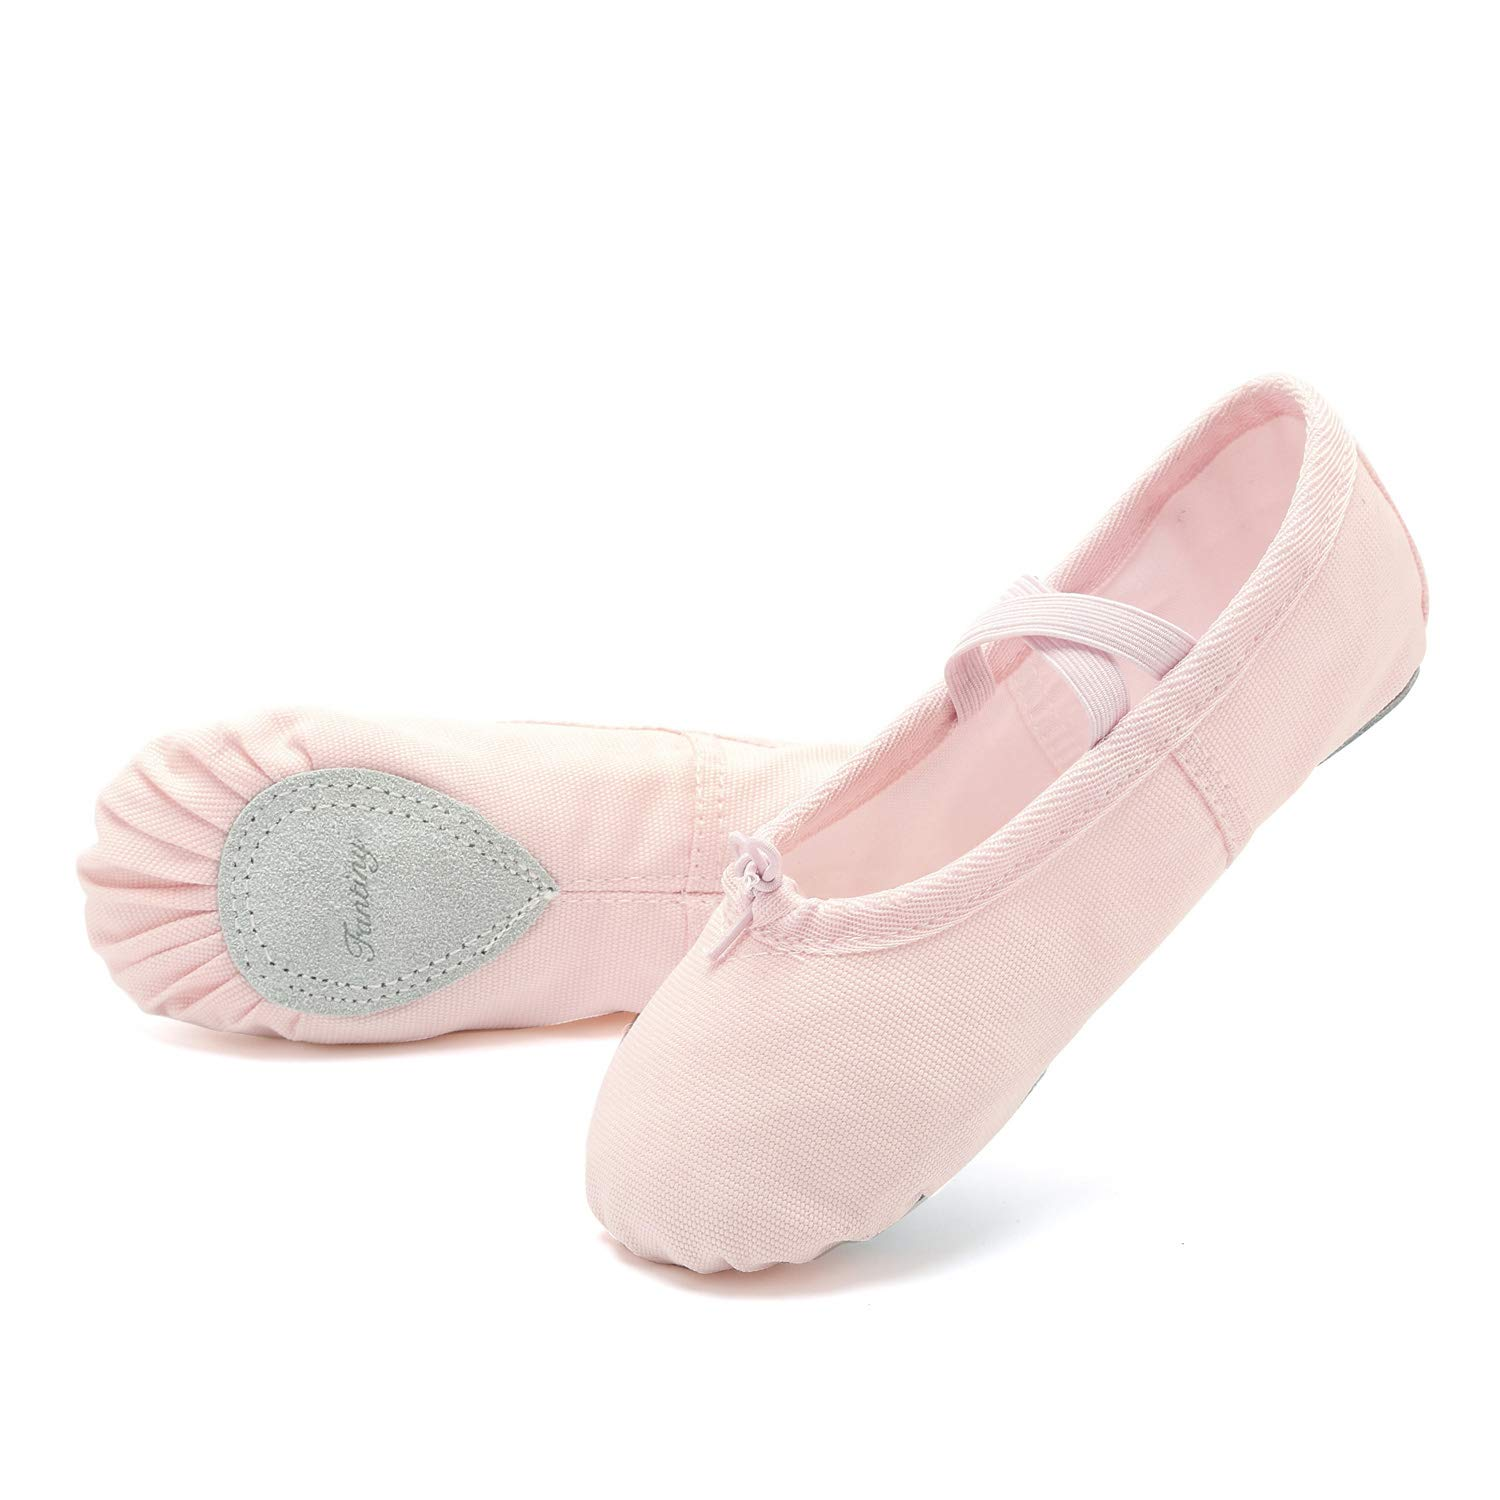 11692a0ae4d12 CIOR Ballet Slippers for Girls Classic Split-Sole Canvas Dance Gymnastics  Yoga Shoes Flats(Toddler/Little Kid/Big Kid/Women) Pink